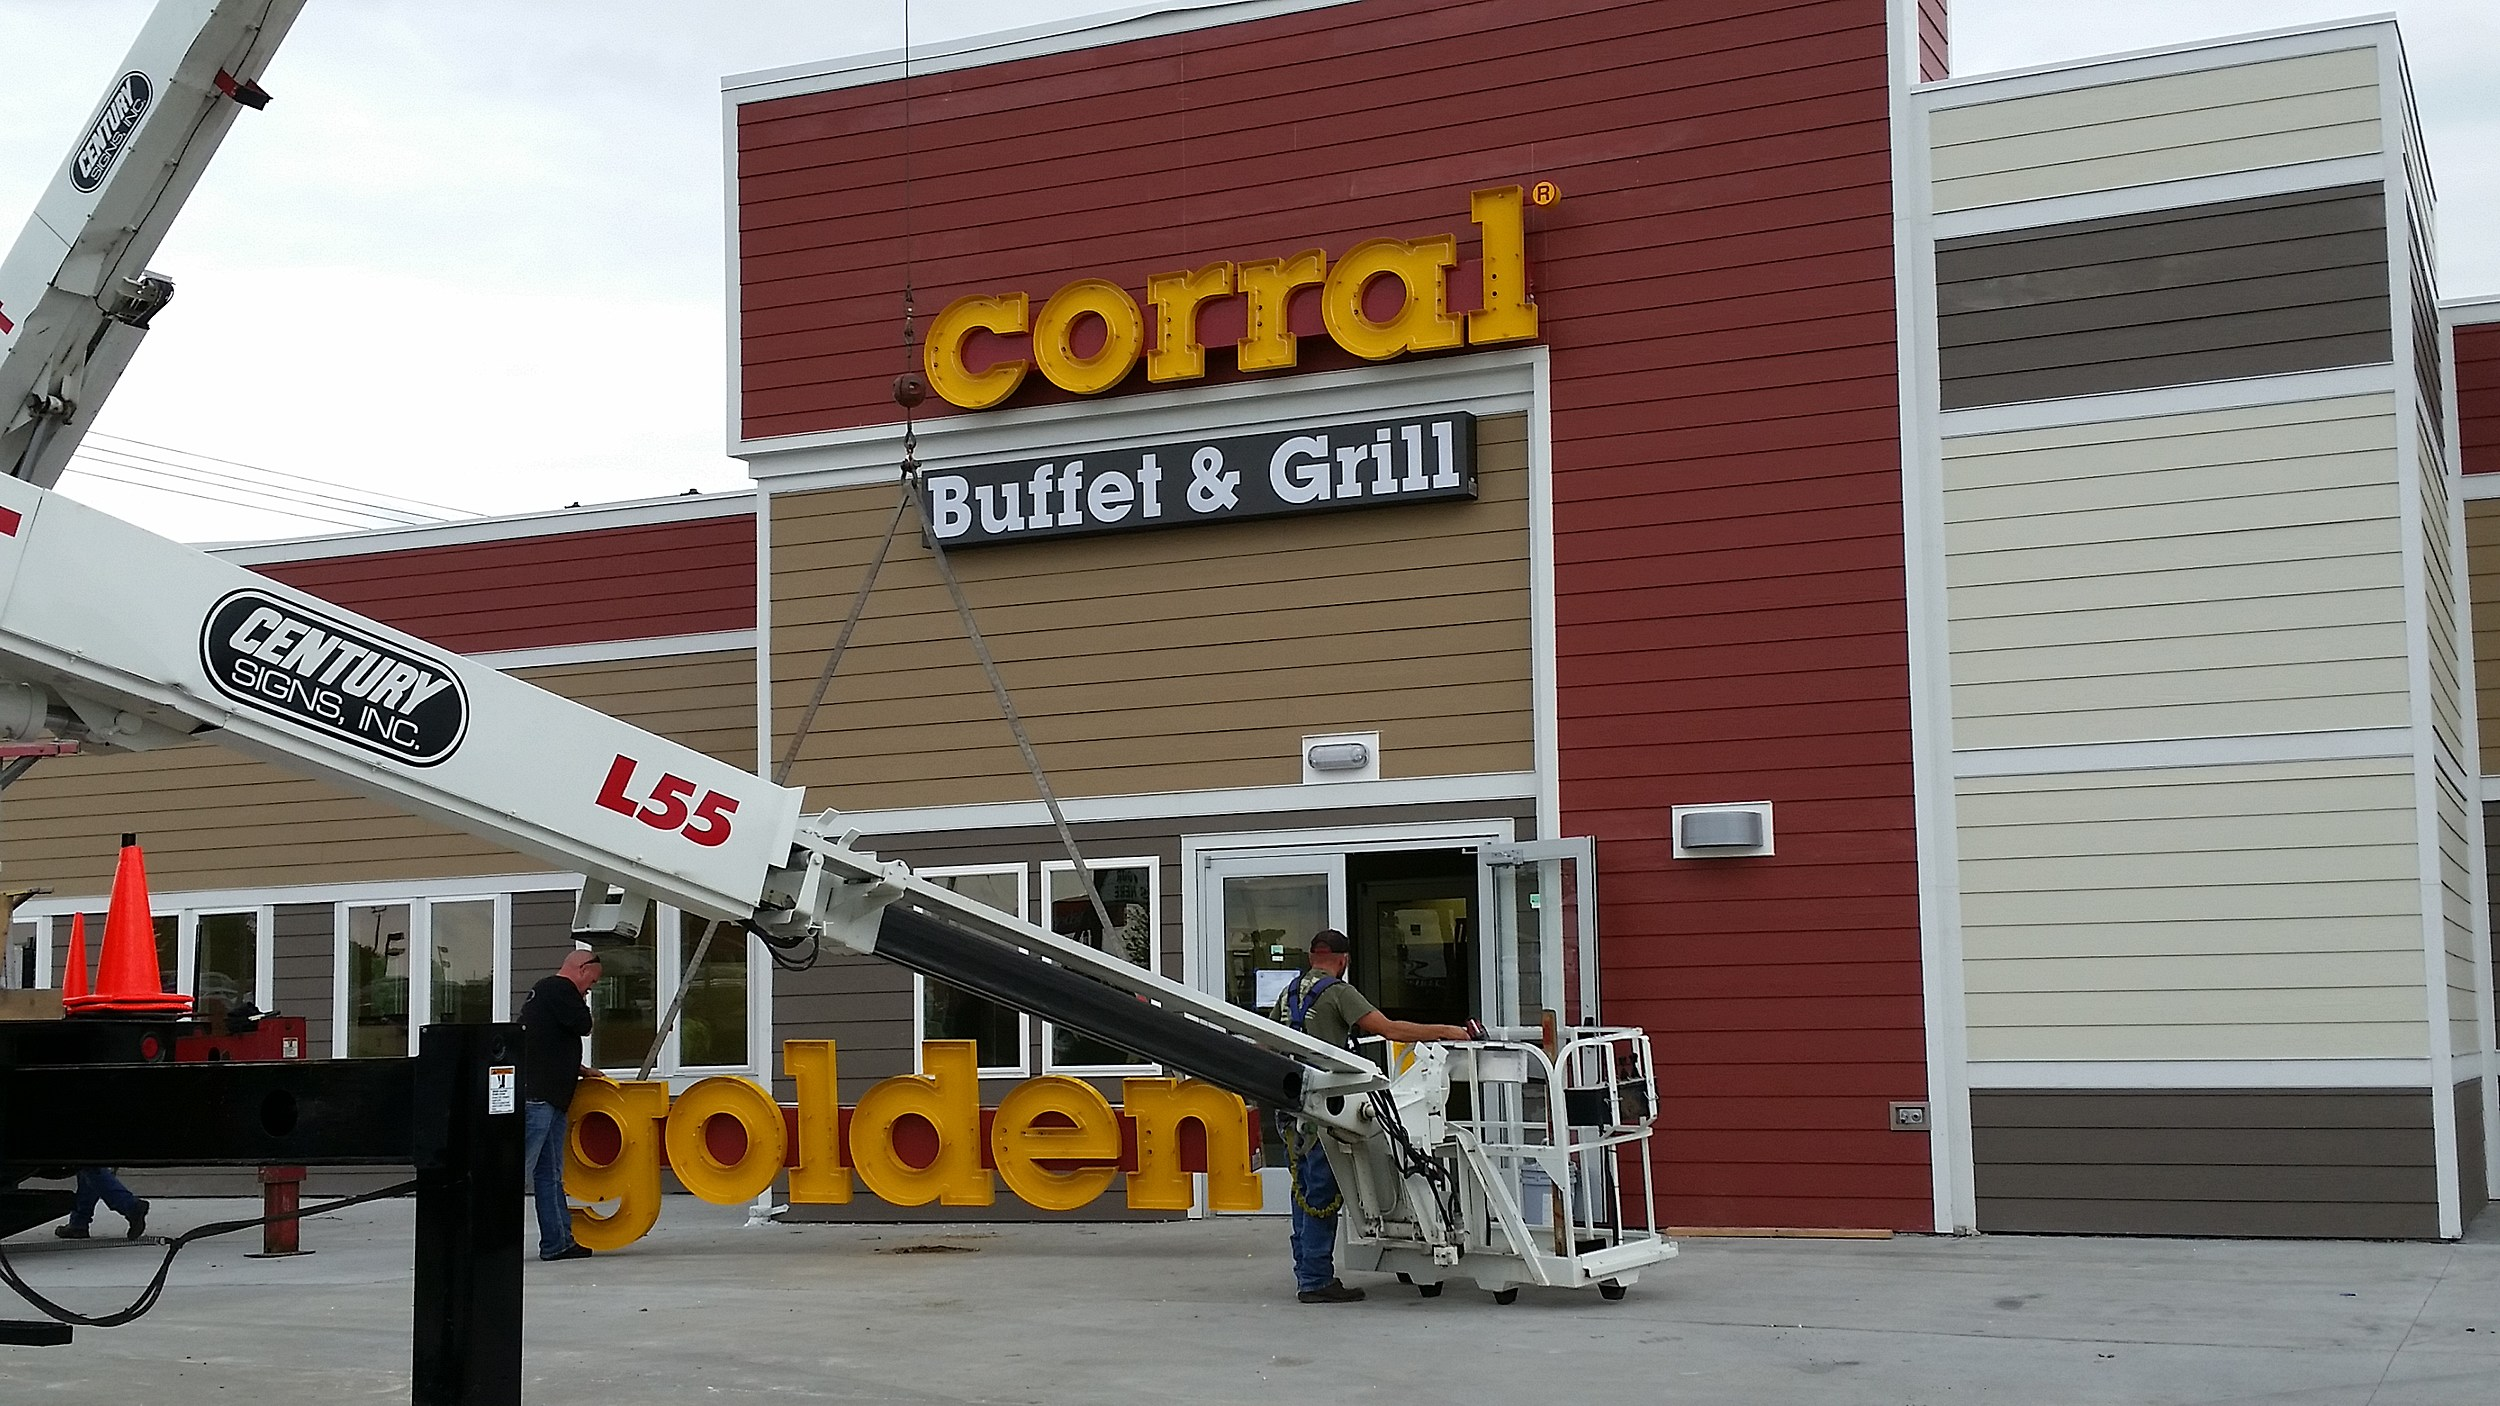 Golden Corral Announces Opening Date